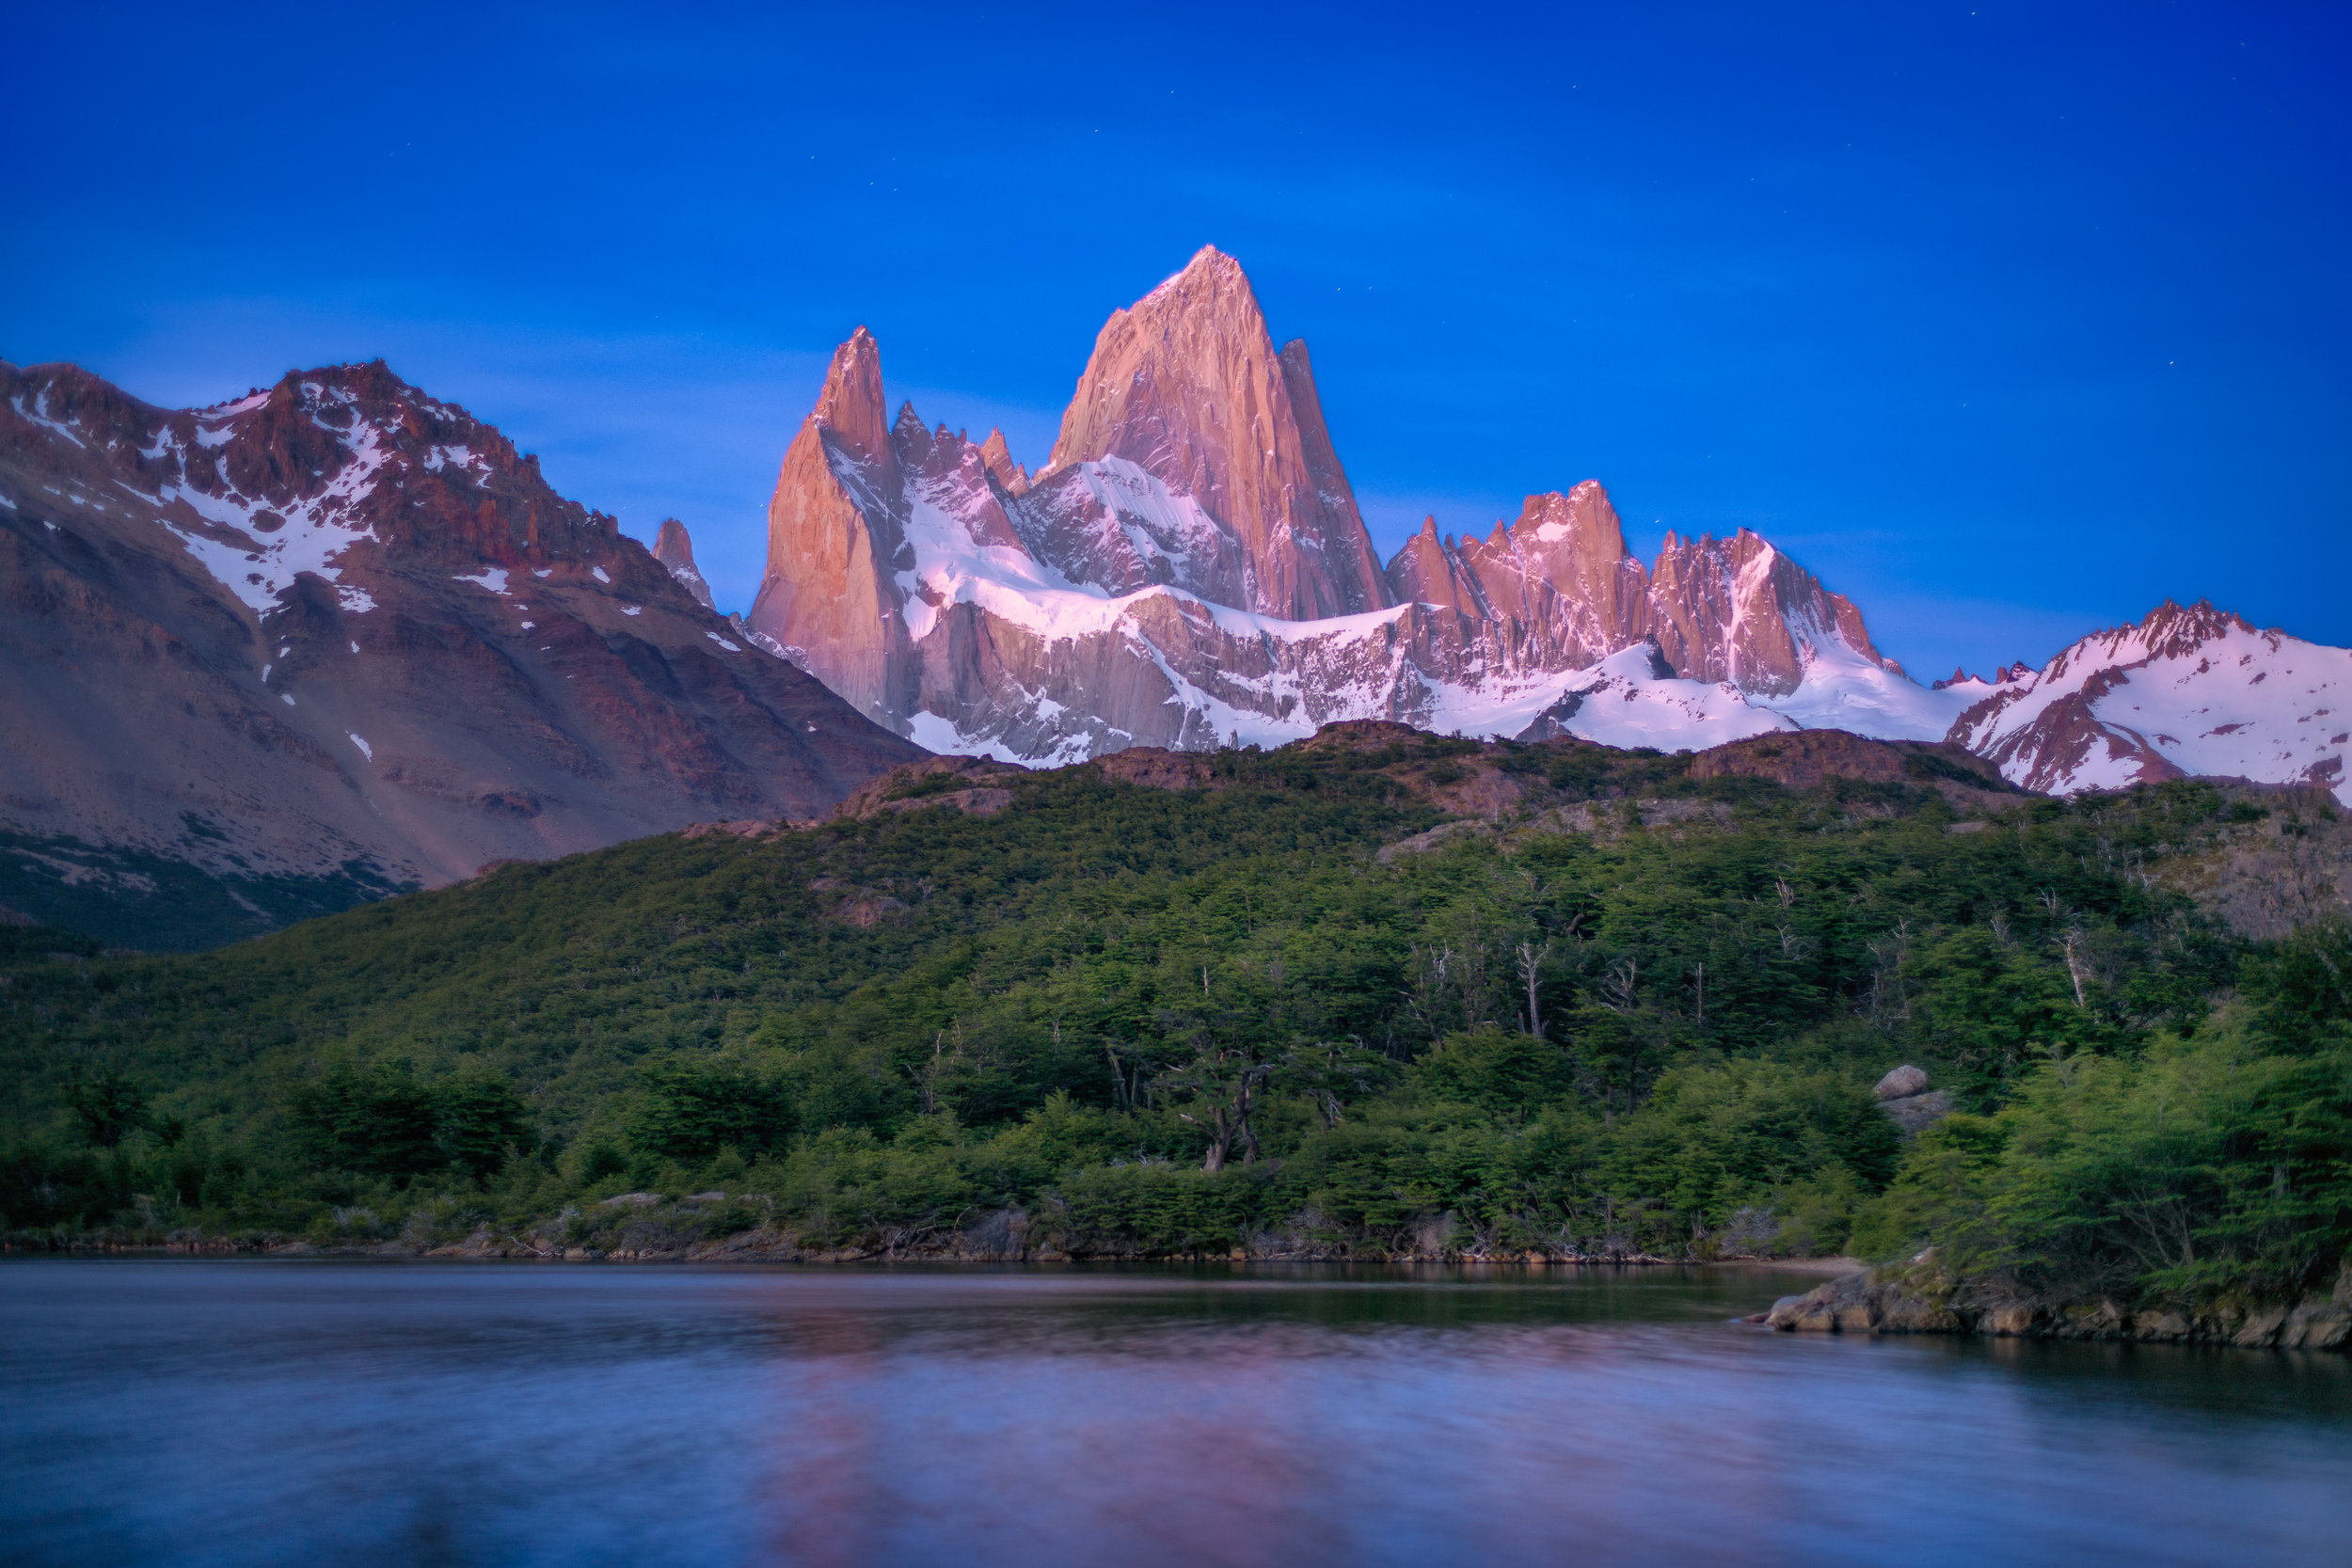 photo_workshop_patagonia-13.jpg